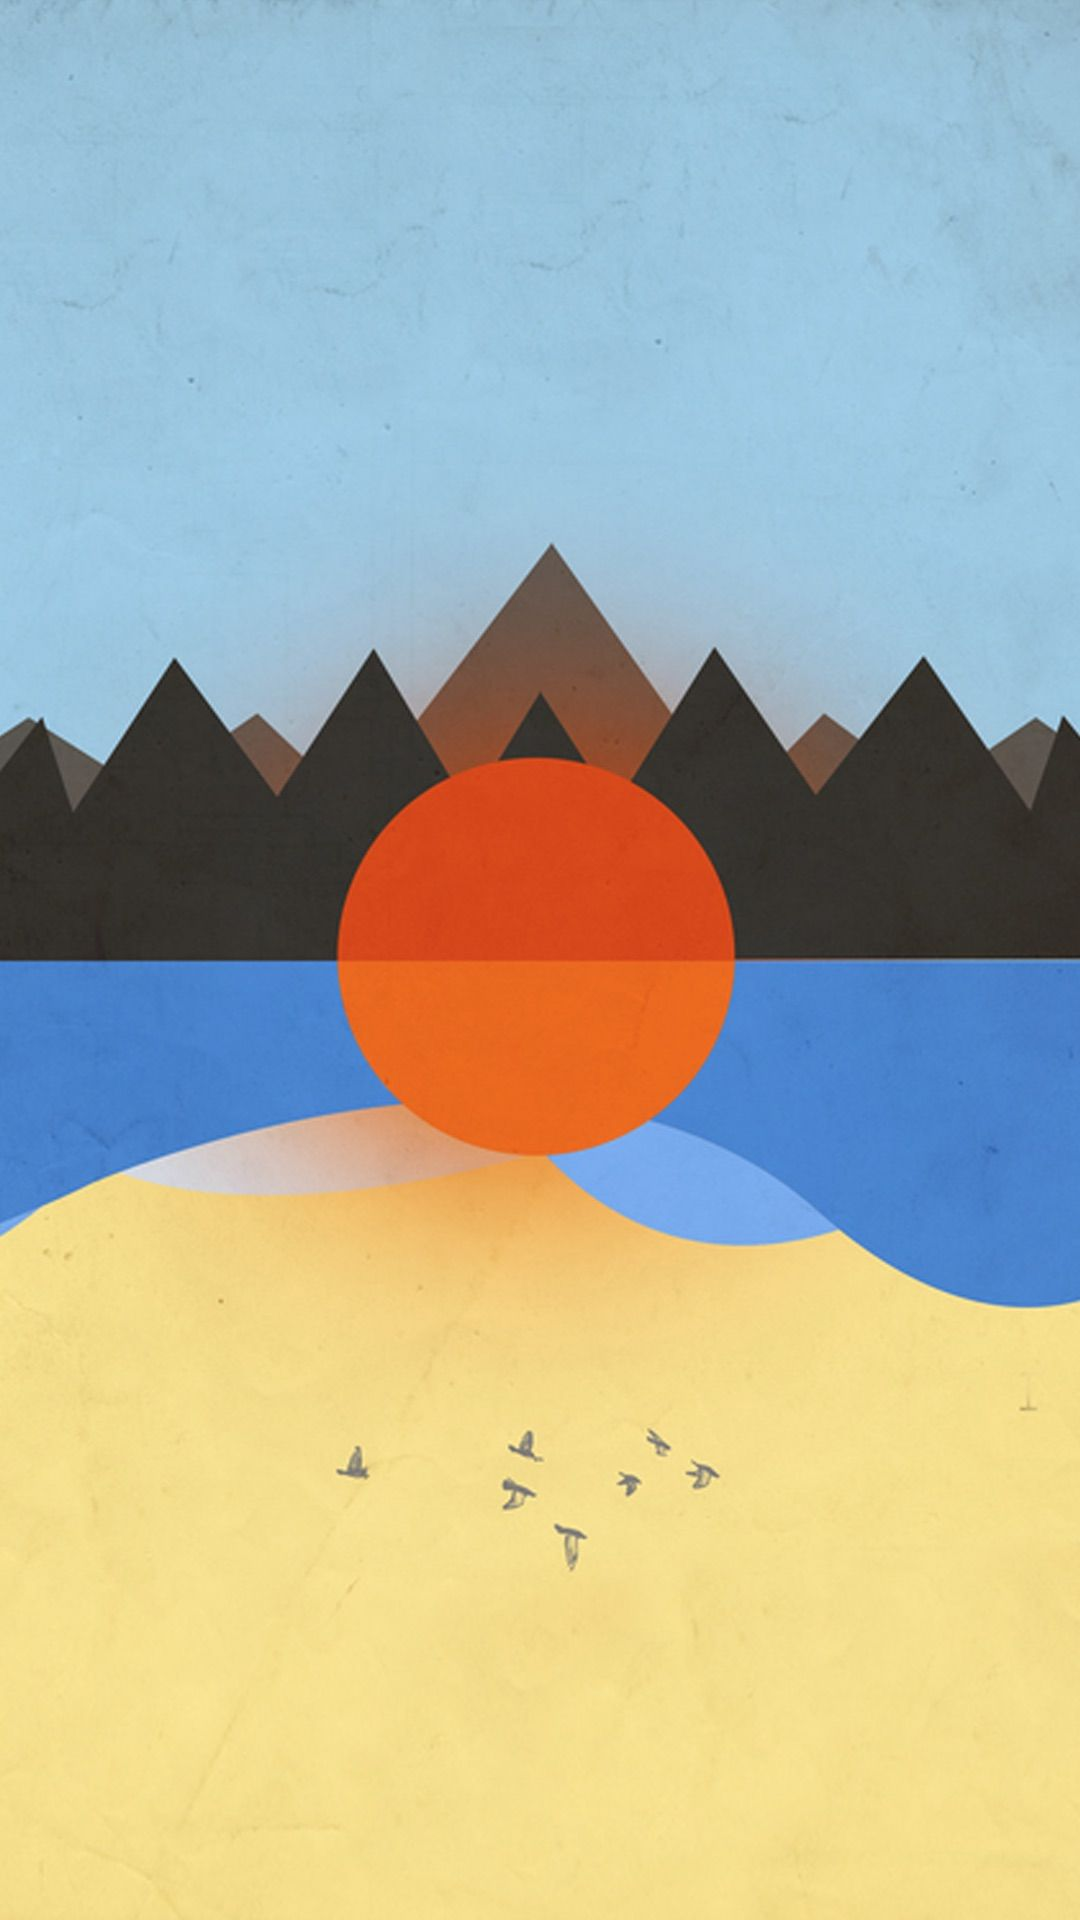 Best Stn Mtn Kauai Iphone Wallpaper Ive Seen Yet Fan Art